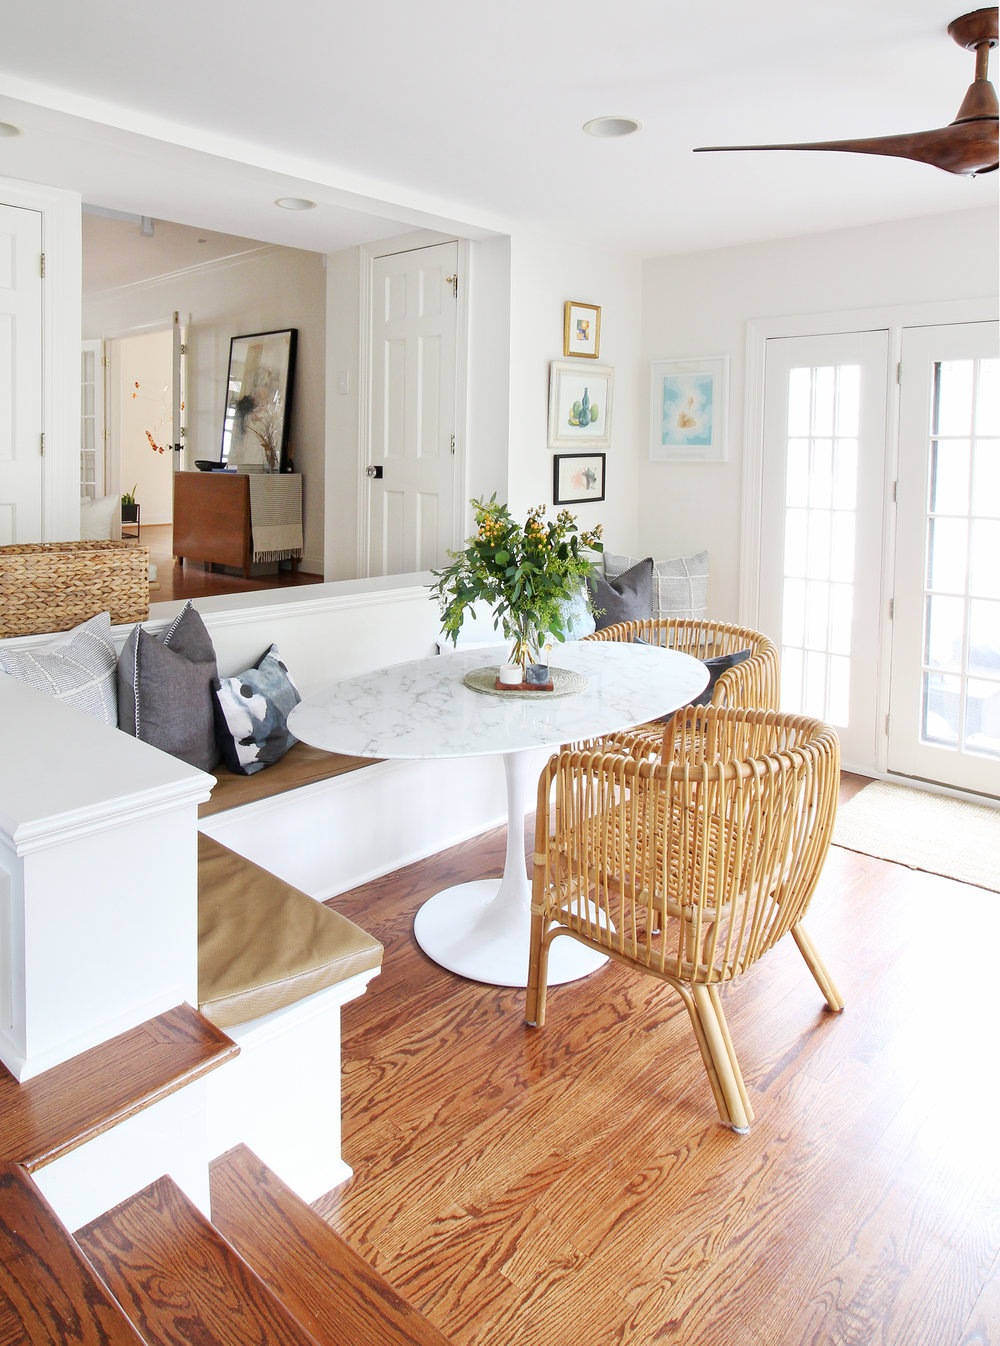 Taking a look back at the top 10 blog posts for Mix & Match Design Company of 2018! Come see what was popular in interior decorating, design tips, e-design projects, and more. Spoiler: this Coastal California breakfast nook made the list and it's one of my absolute favorite projects to date!